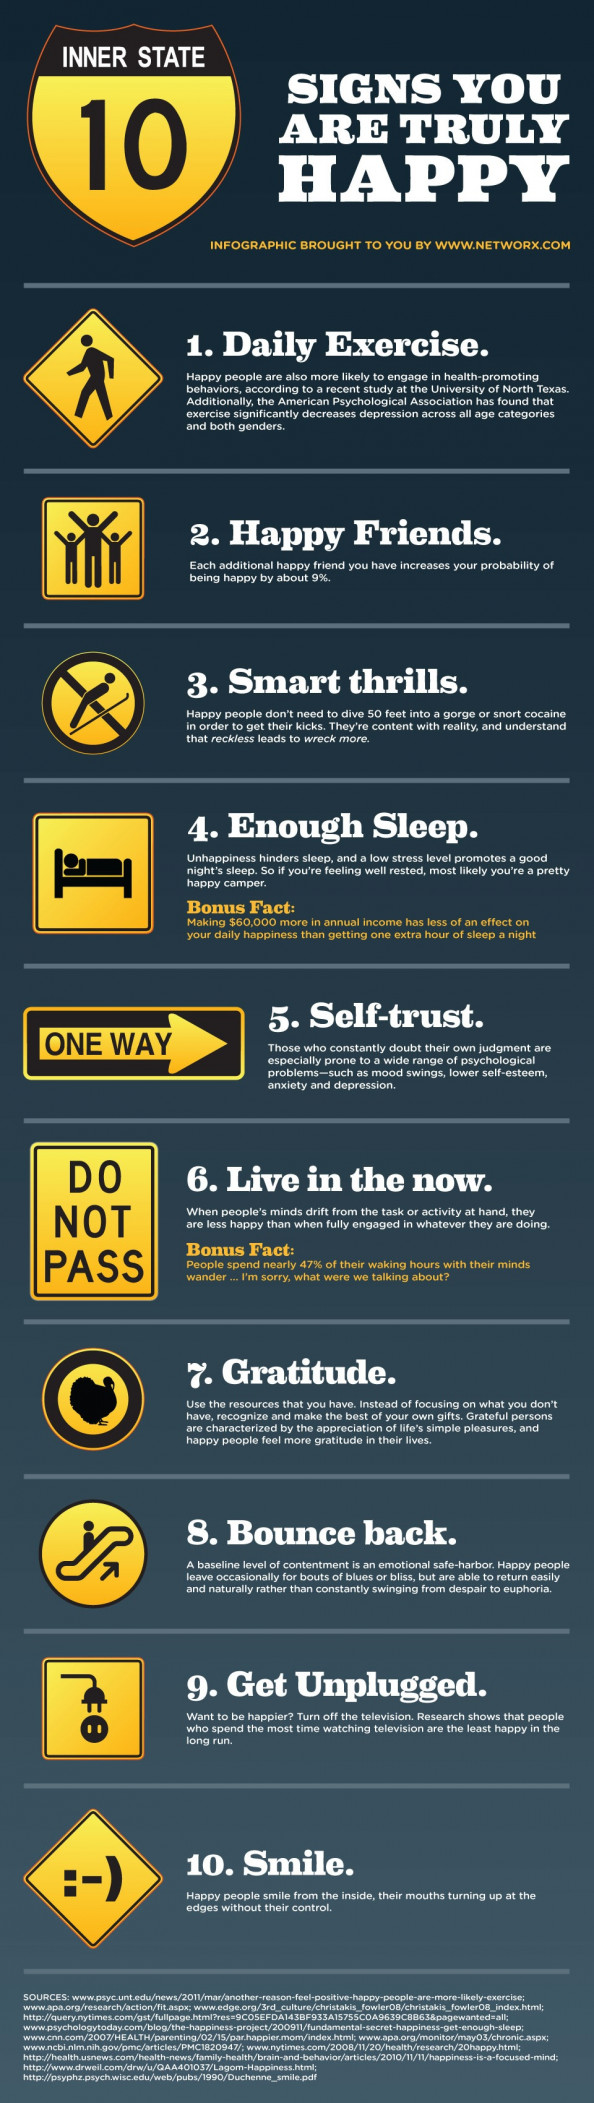 10 Signs You are Truly Happy Infographic